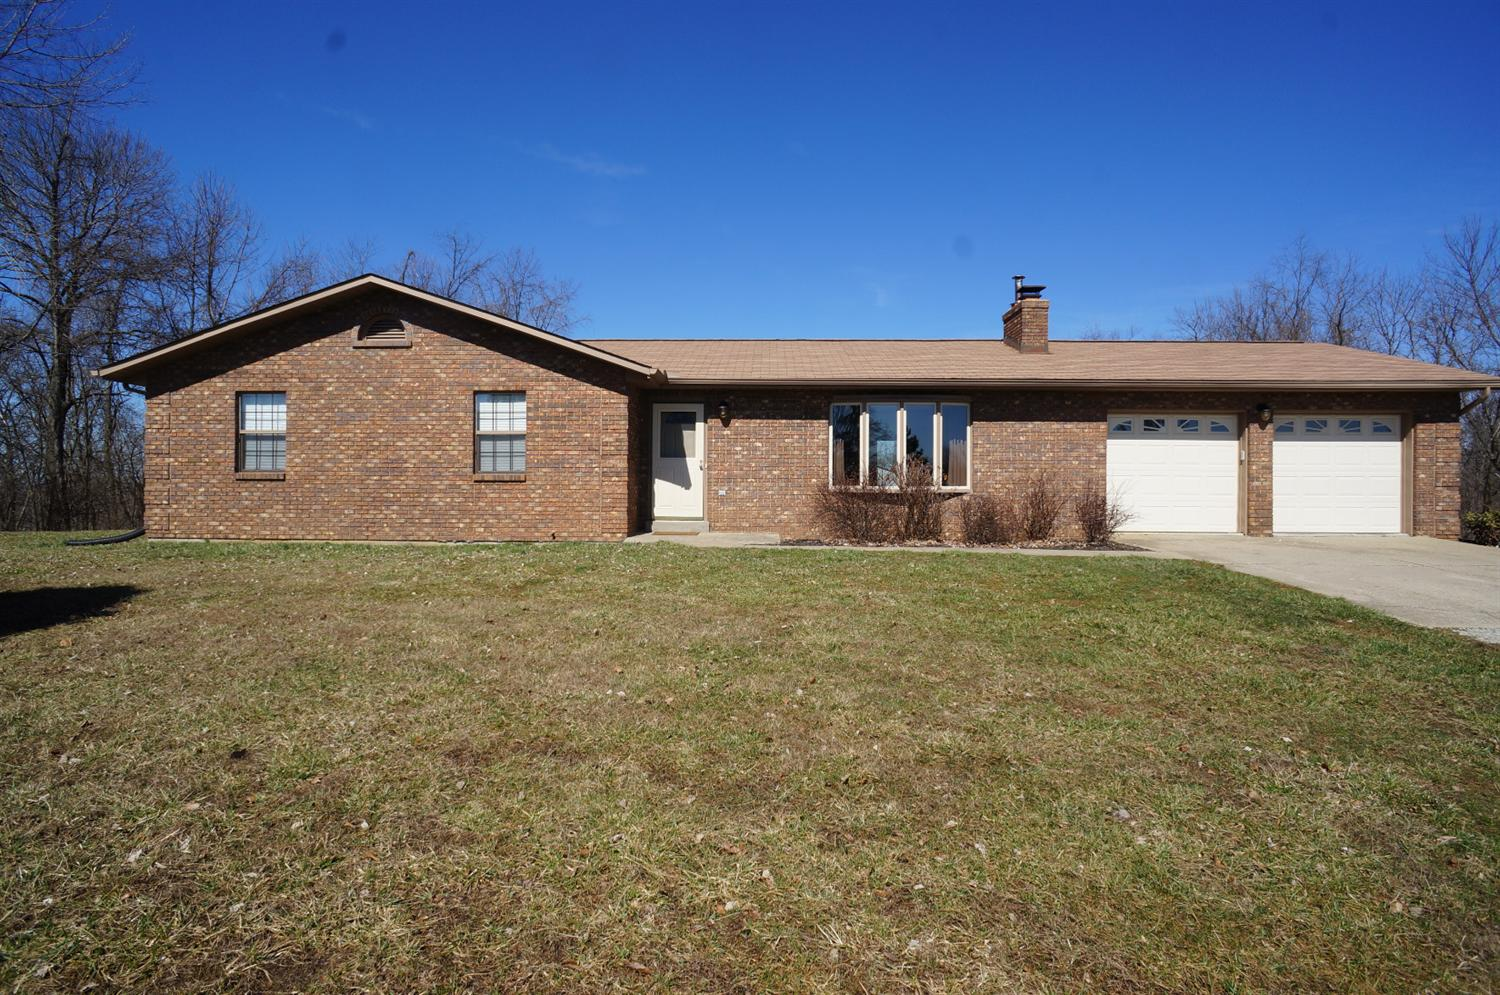 Photo 1 for 8267 East Bend Rd Burlington, KY 41005